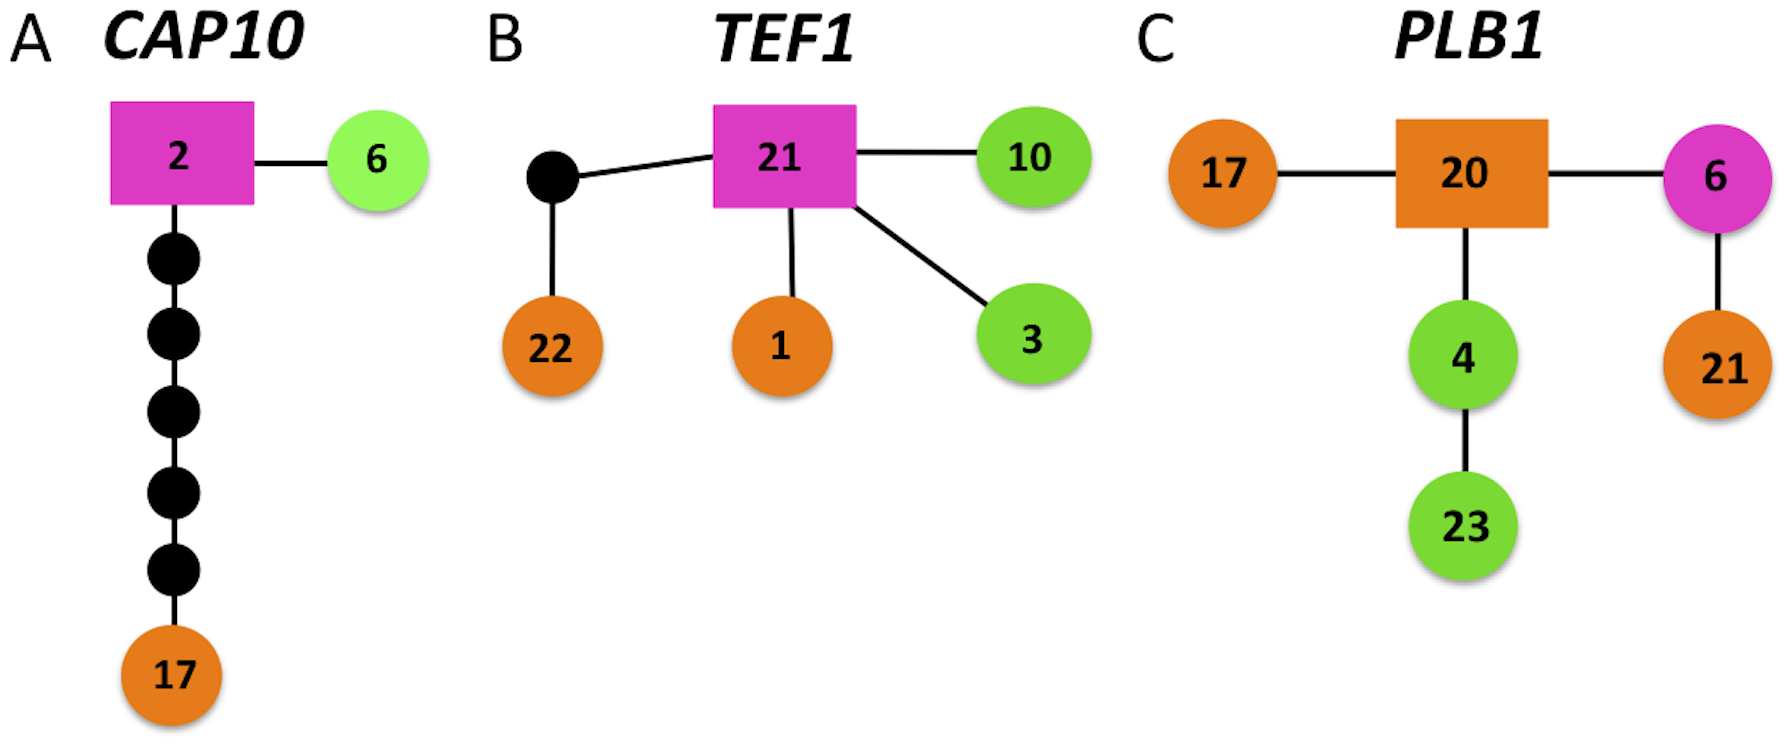 Haplotype mapping of markers harboring shared alleles between VGIIIa and VGIIIb shows evidence for both ancestral origins and introgression of shared alleles.